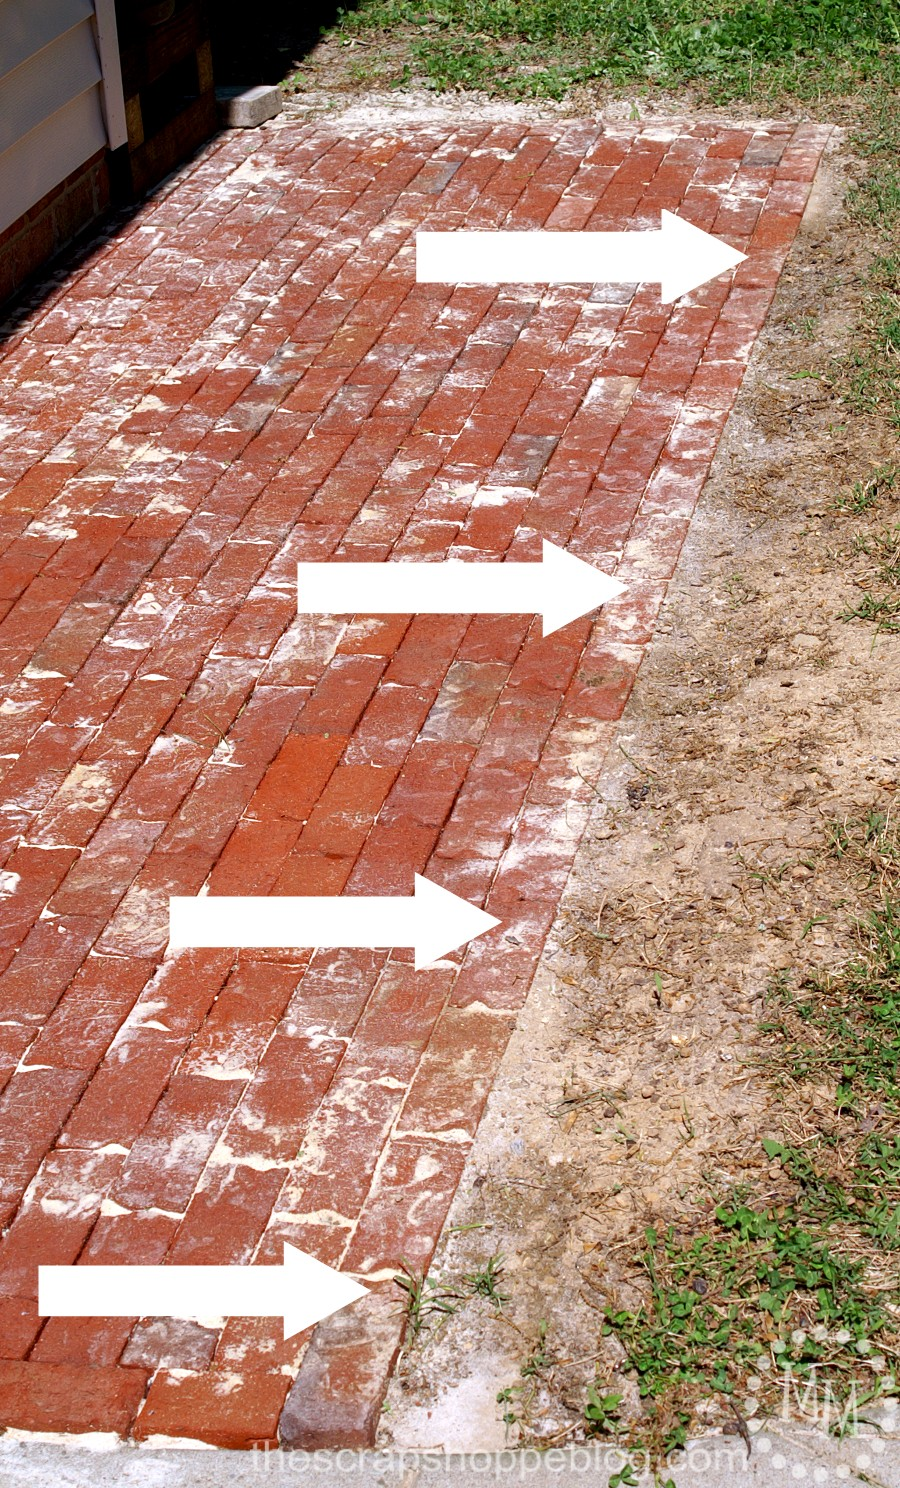 how to build a brick patio - addressing flooding issue